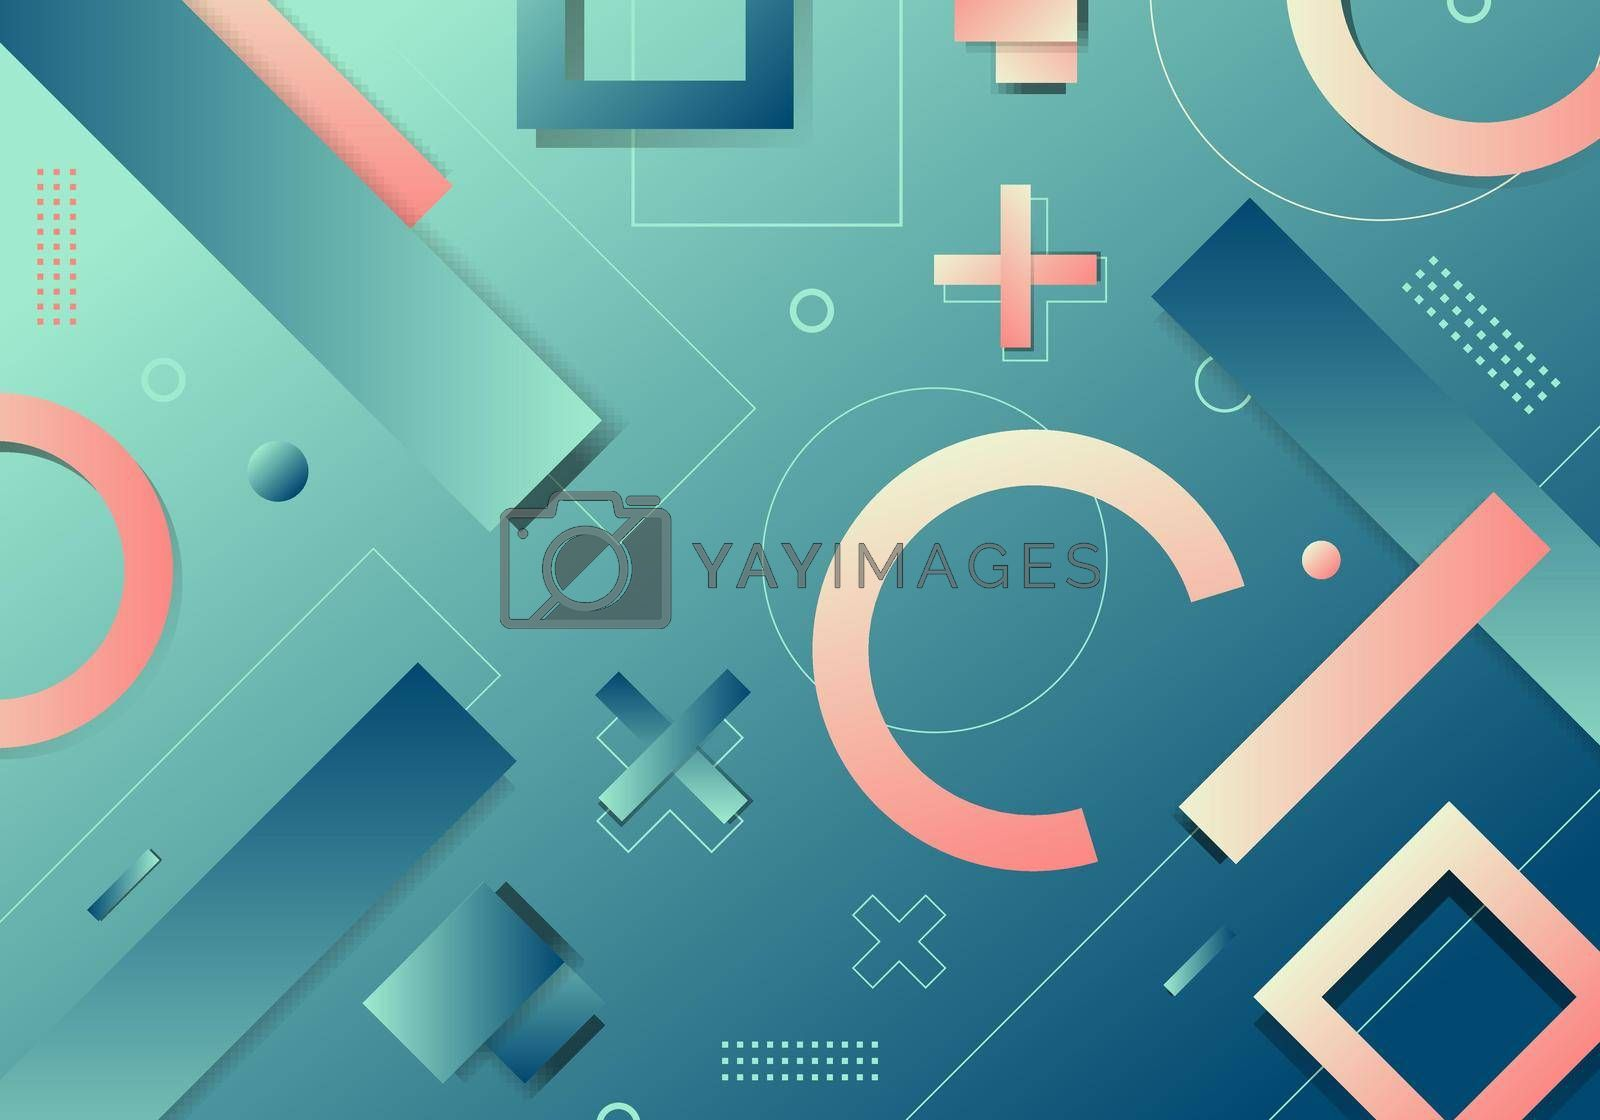 Royalty free image of Abstract background geometric gradient shape elements pattern dynamic shape compositions by phochi